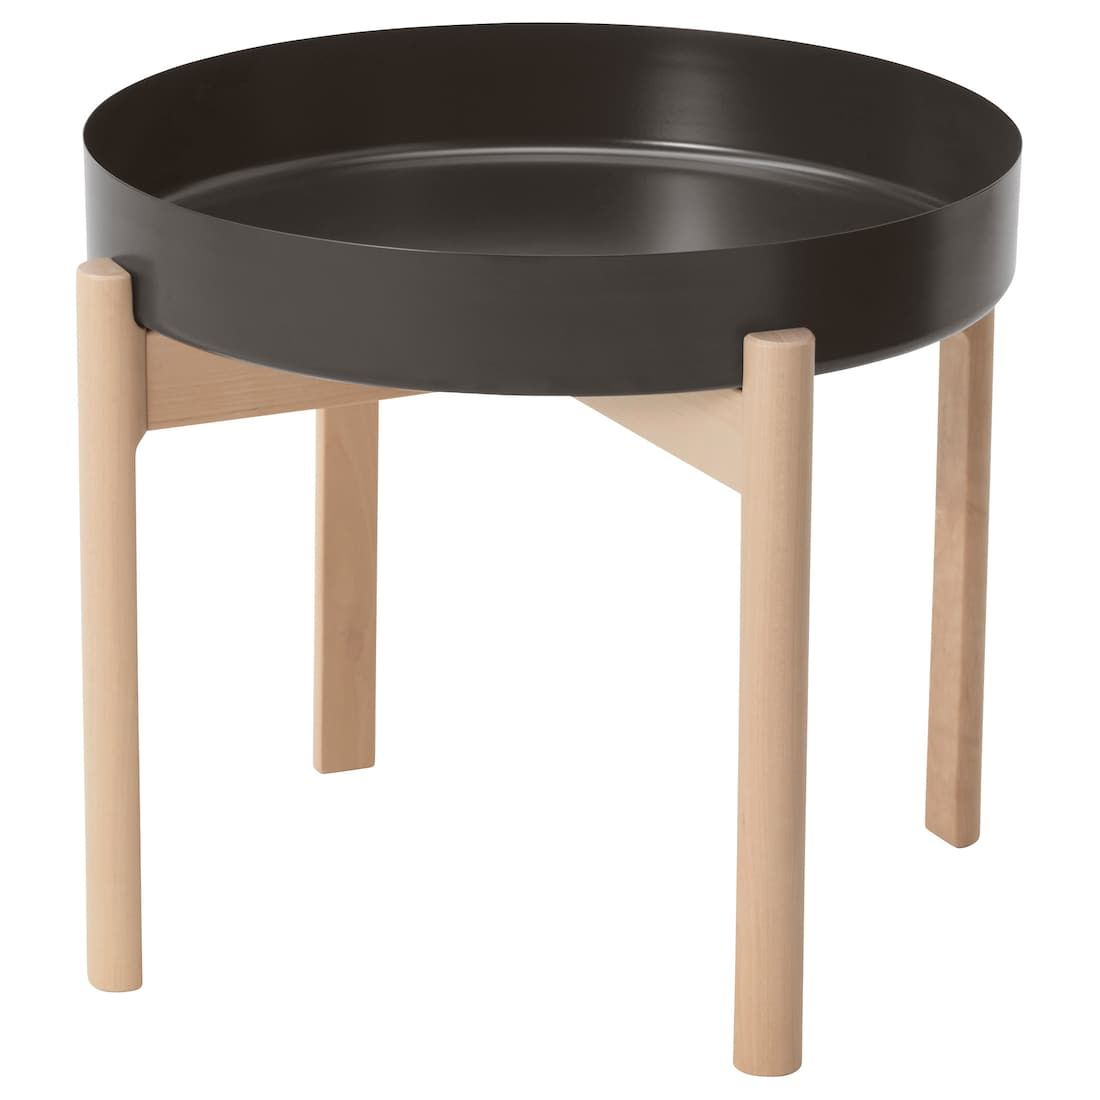 Couchtisch Ypperlig Ypperlig Coffee Table Dark Gray Birch Daycare Things To Buy